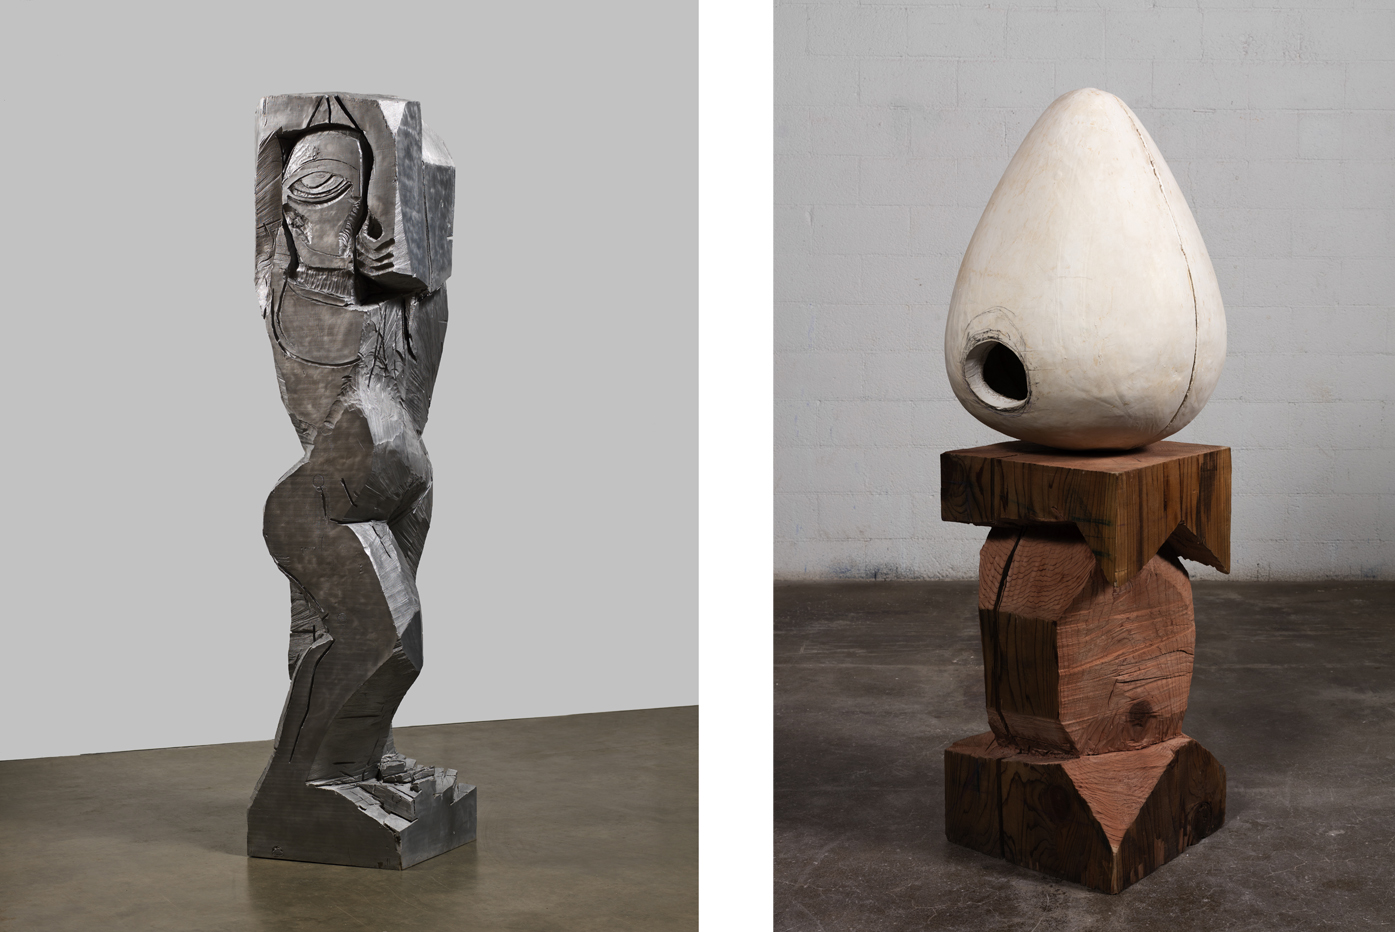 Left: Thomas Houseago, 'Rattlesnake Figure (Aluminum),' 2011. Photography by Fredrik Nilsen. Courtesy of the artist and Hauser & Wirth.Right: Thomas Houseago, 'Untitled (Egg),' 2015. Photography by Fredrik Nilsen. Courtesy of the artist and Hauser & Wirth.